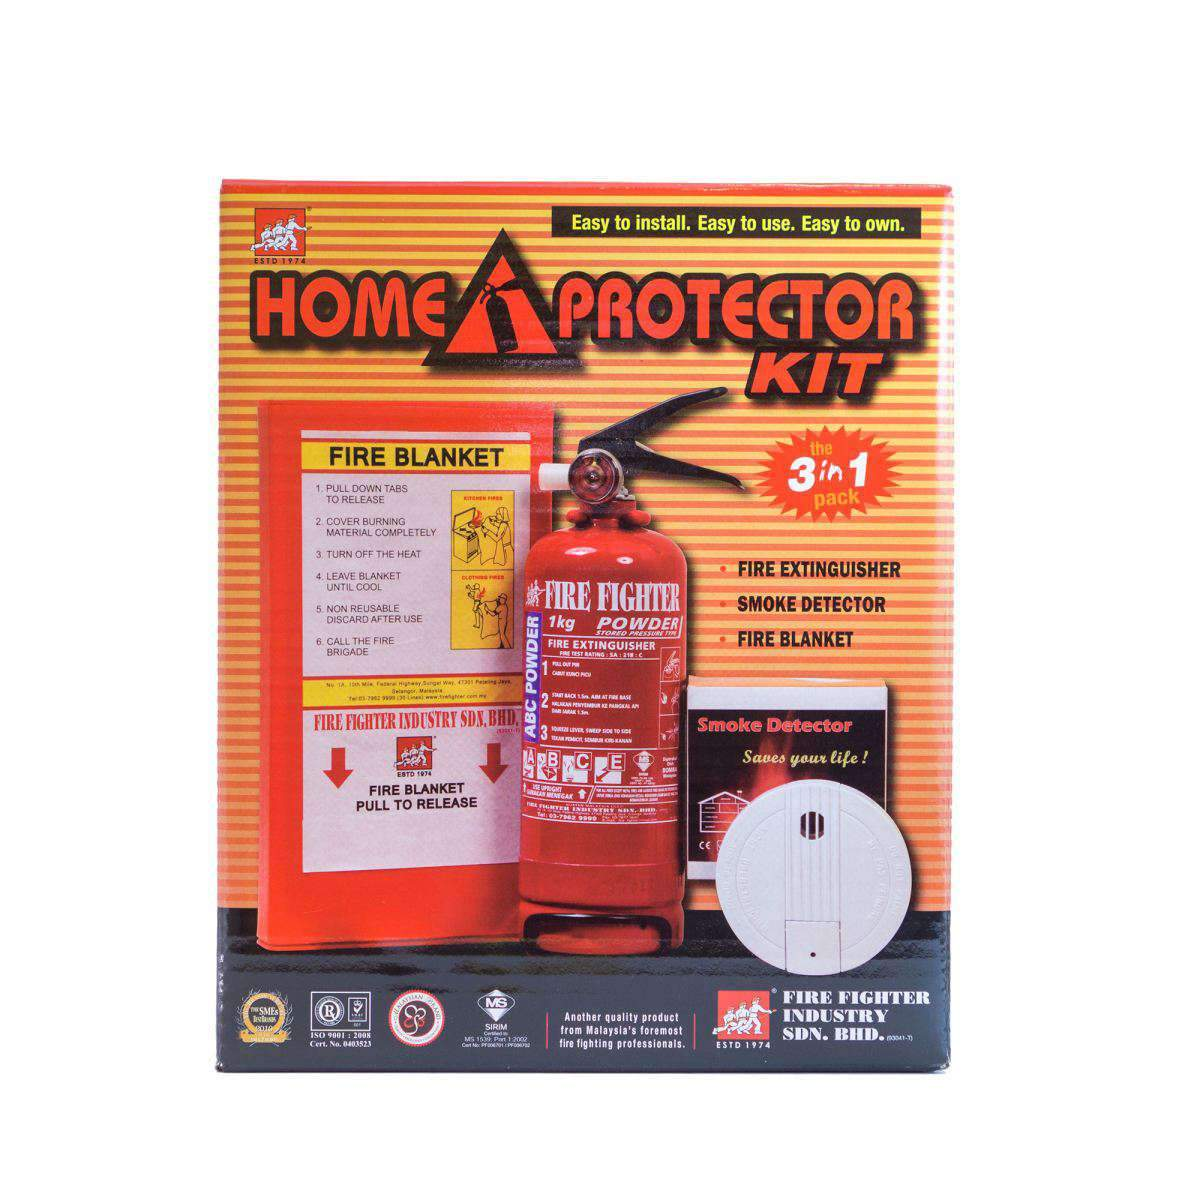 Home Protector Kit (RM255 value)